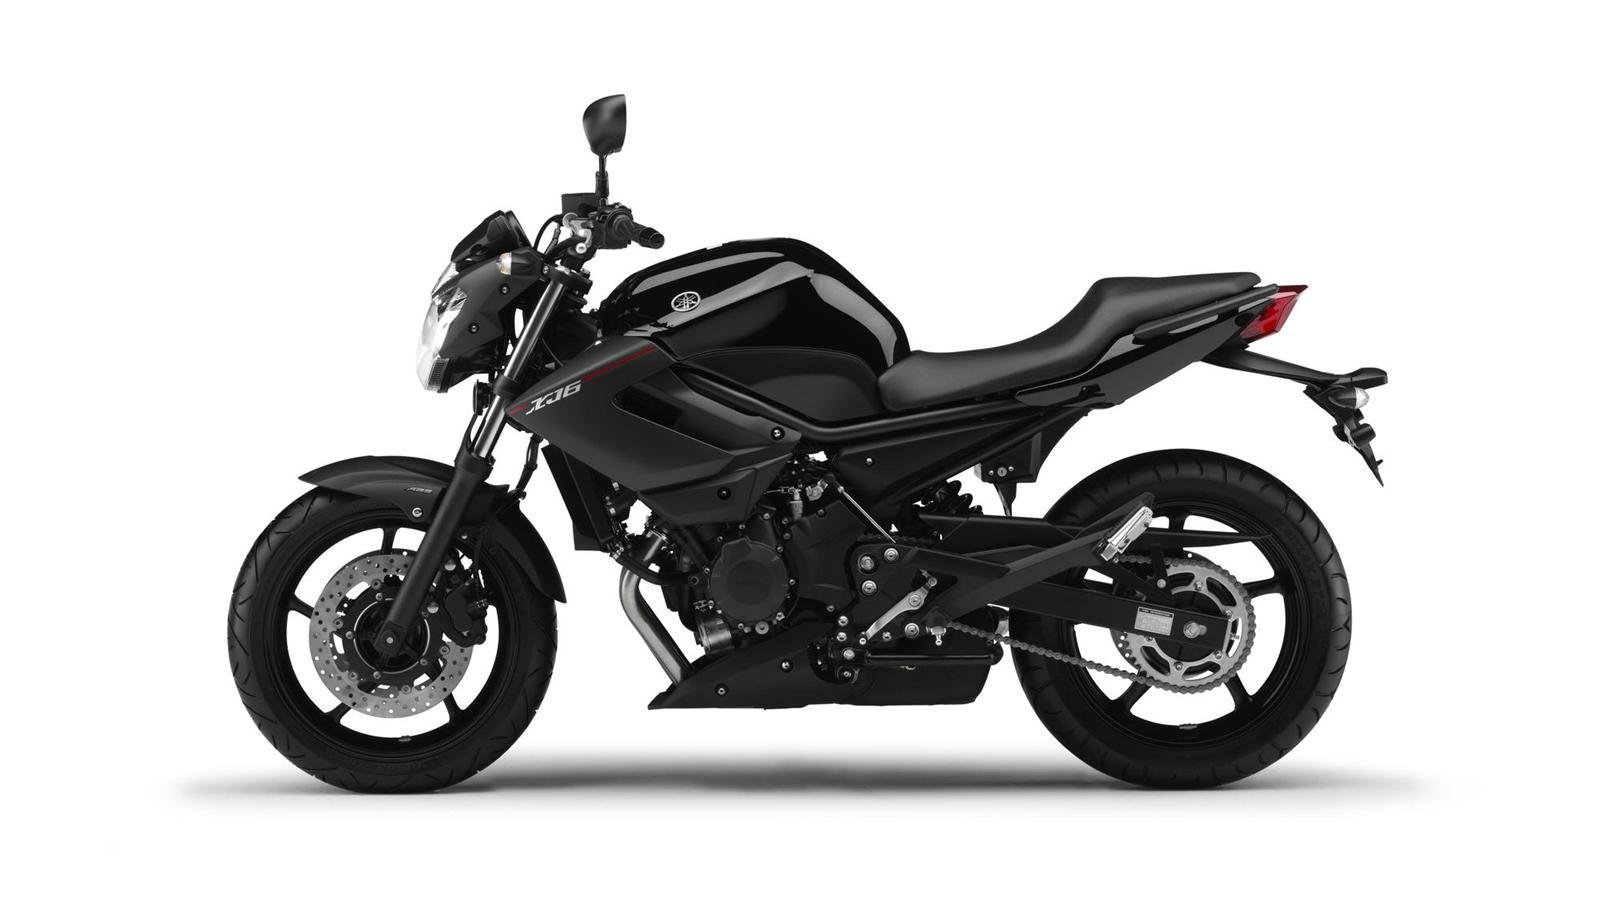 2013 yamaha xj6 abs picture 501263 motorcycle review top speed. Black Bedroom Furniture Sets. Home Design Ideas